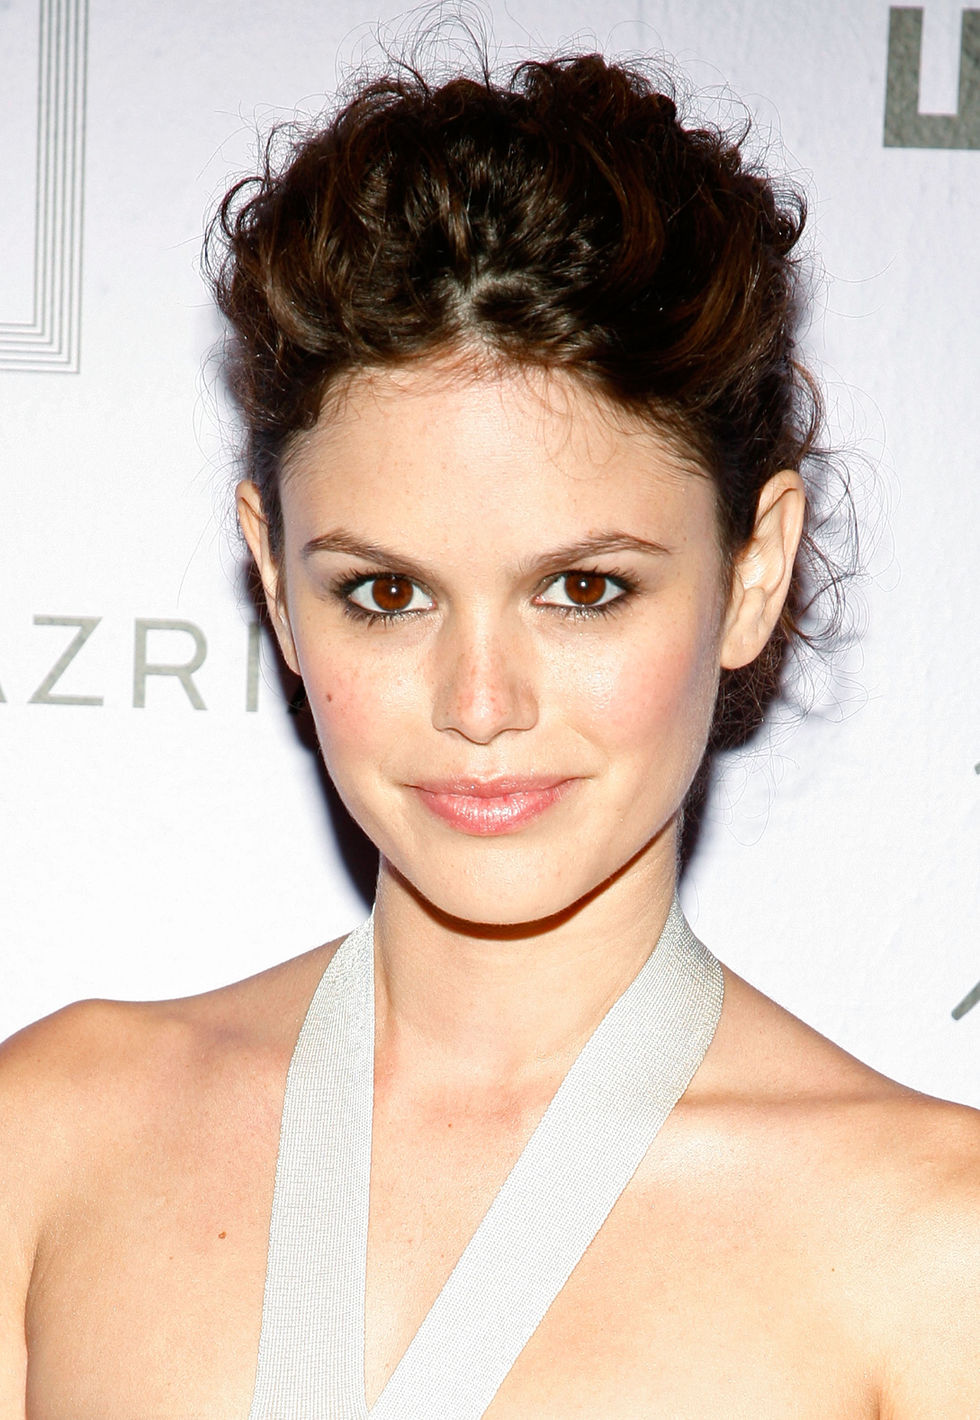 rachel-bilson-at-the-whitney-contemporaries-art-party-and-auction-01